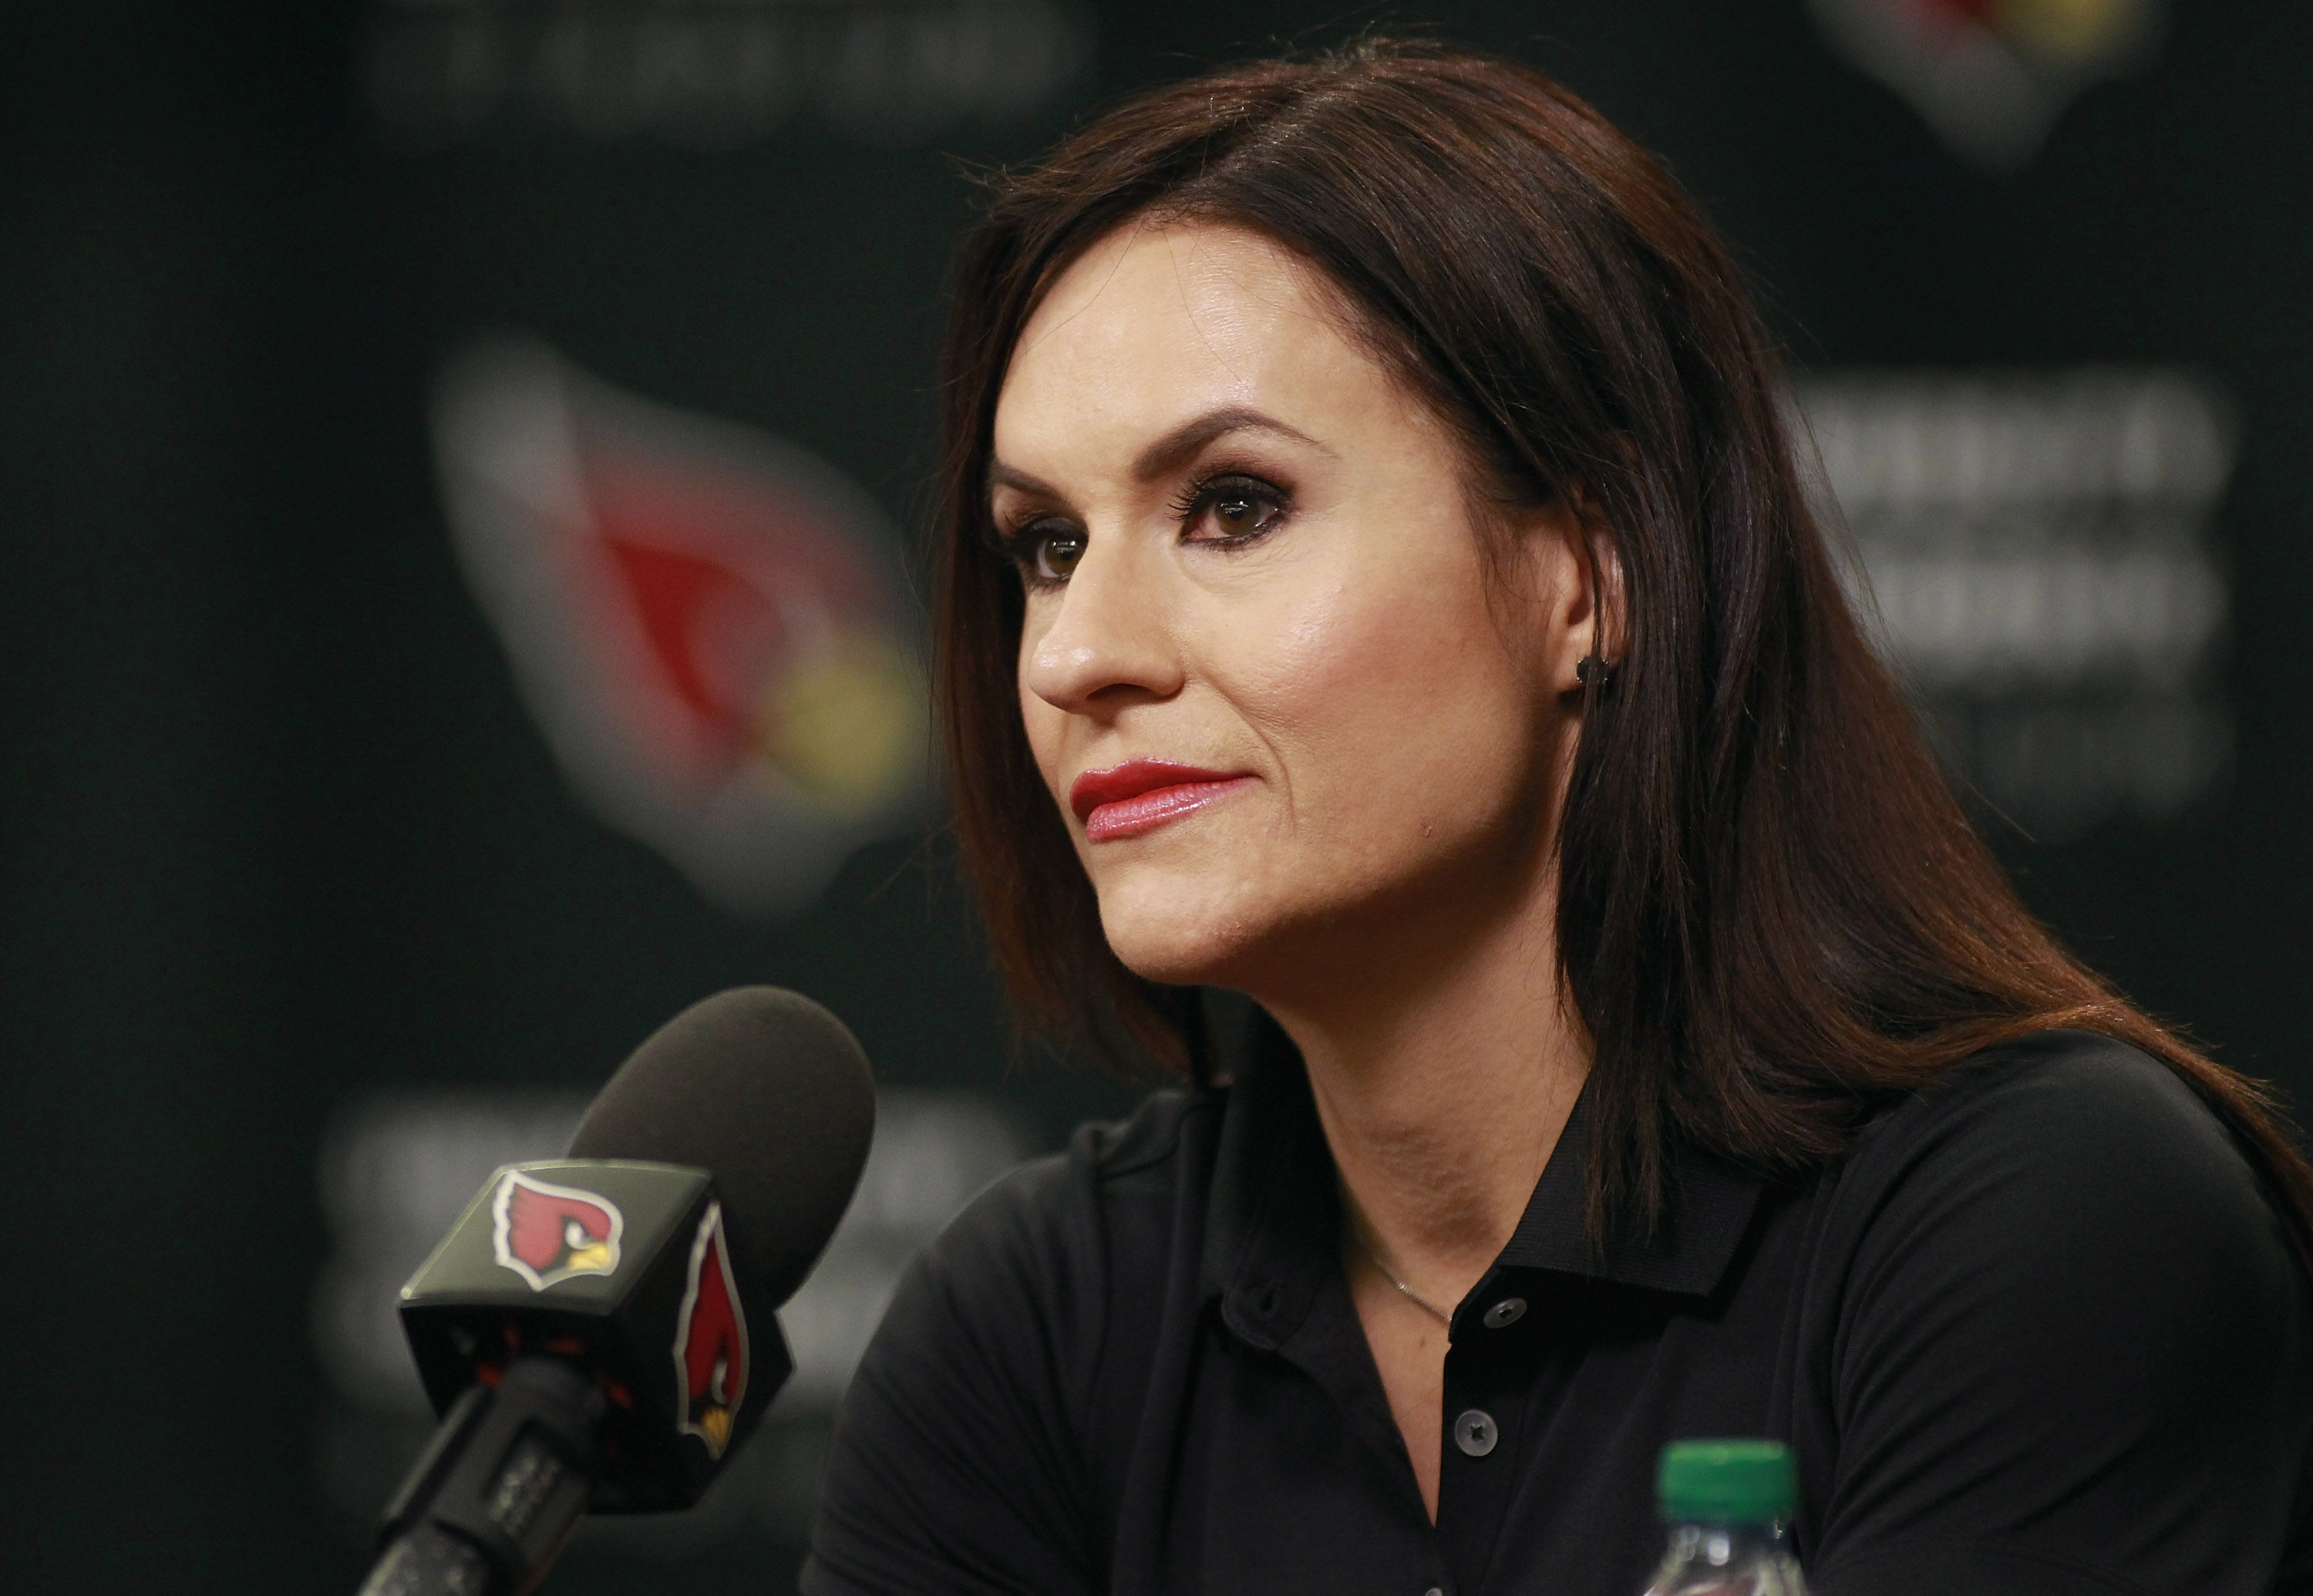 Jen Welter looks on during a press conference where she was named an intern coach for the Arizona Cardinals on July 28, 2015 in Tempe, Arizona.